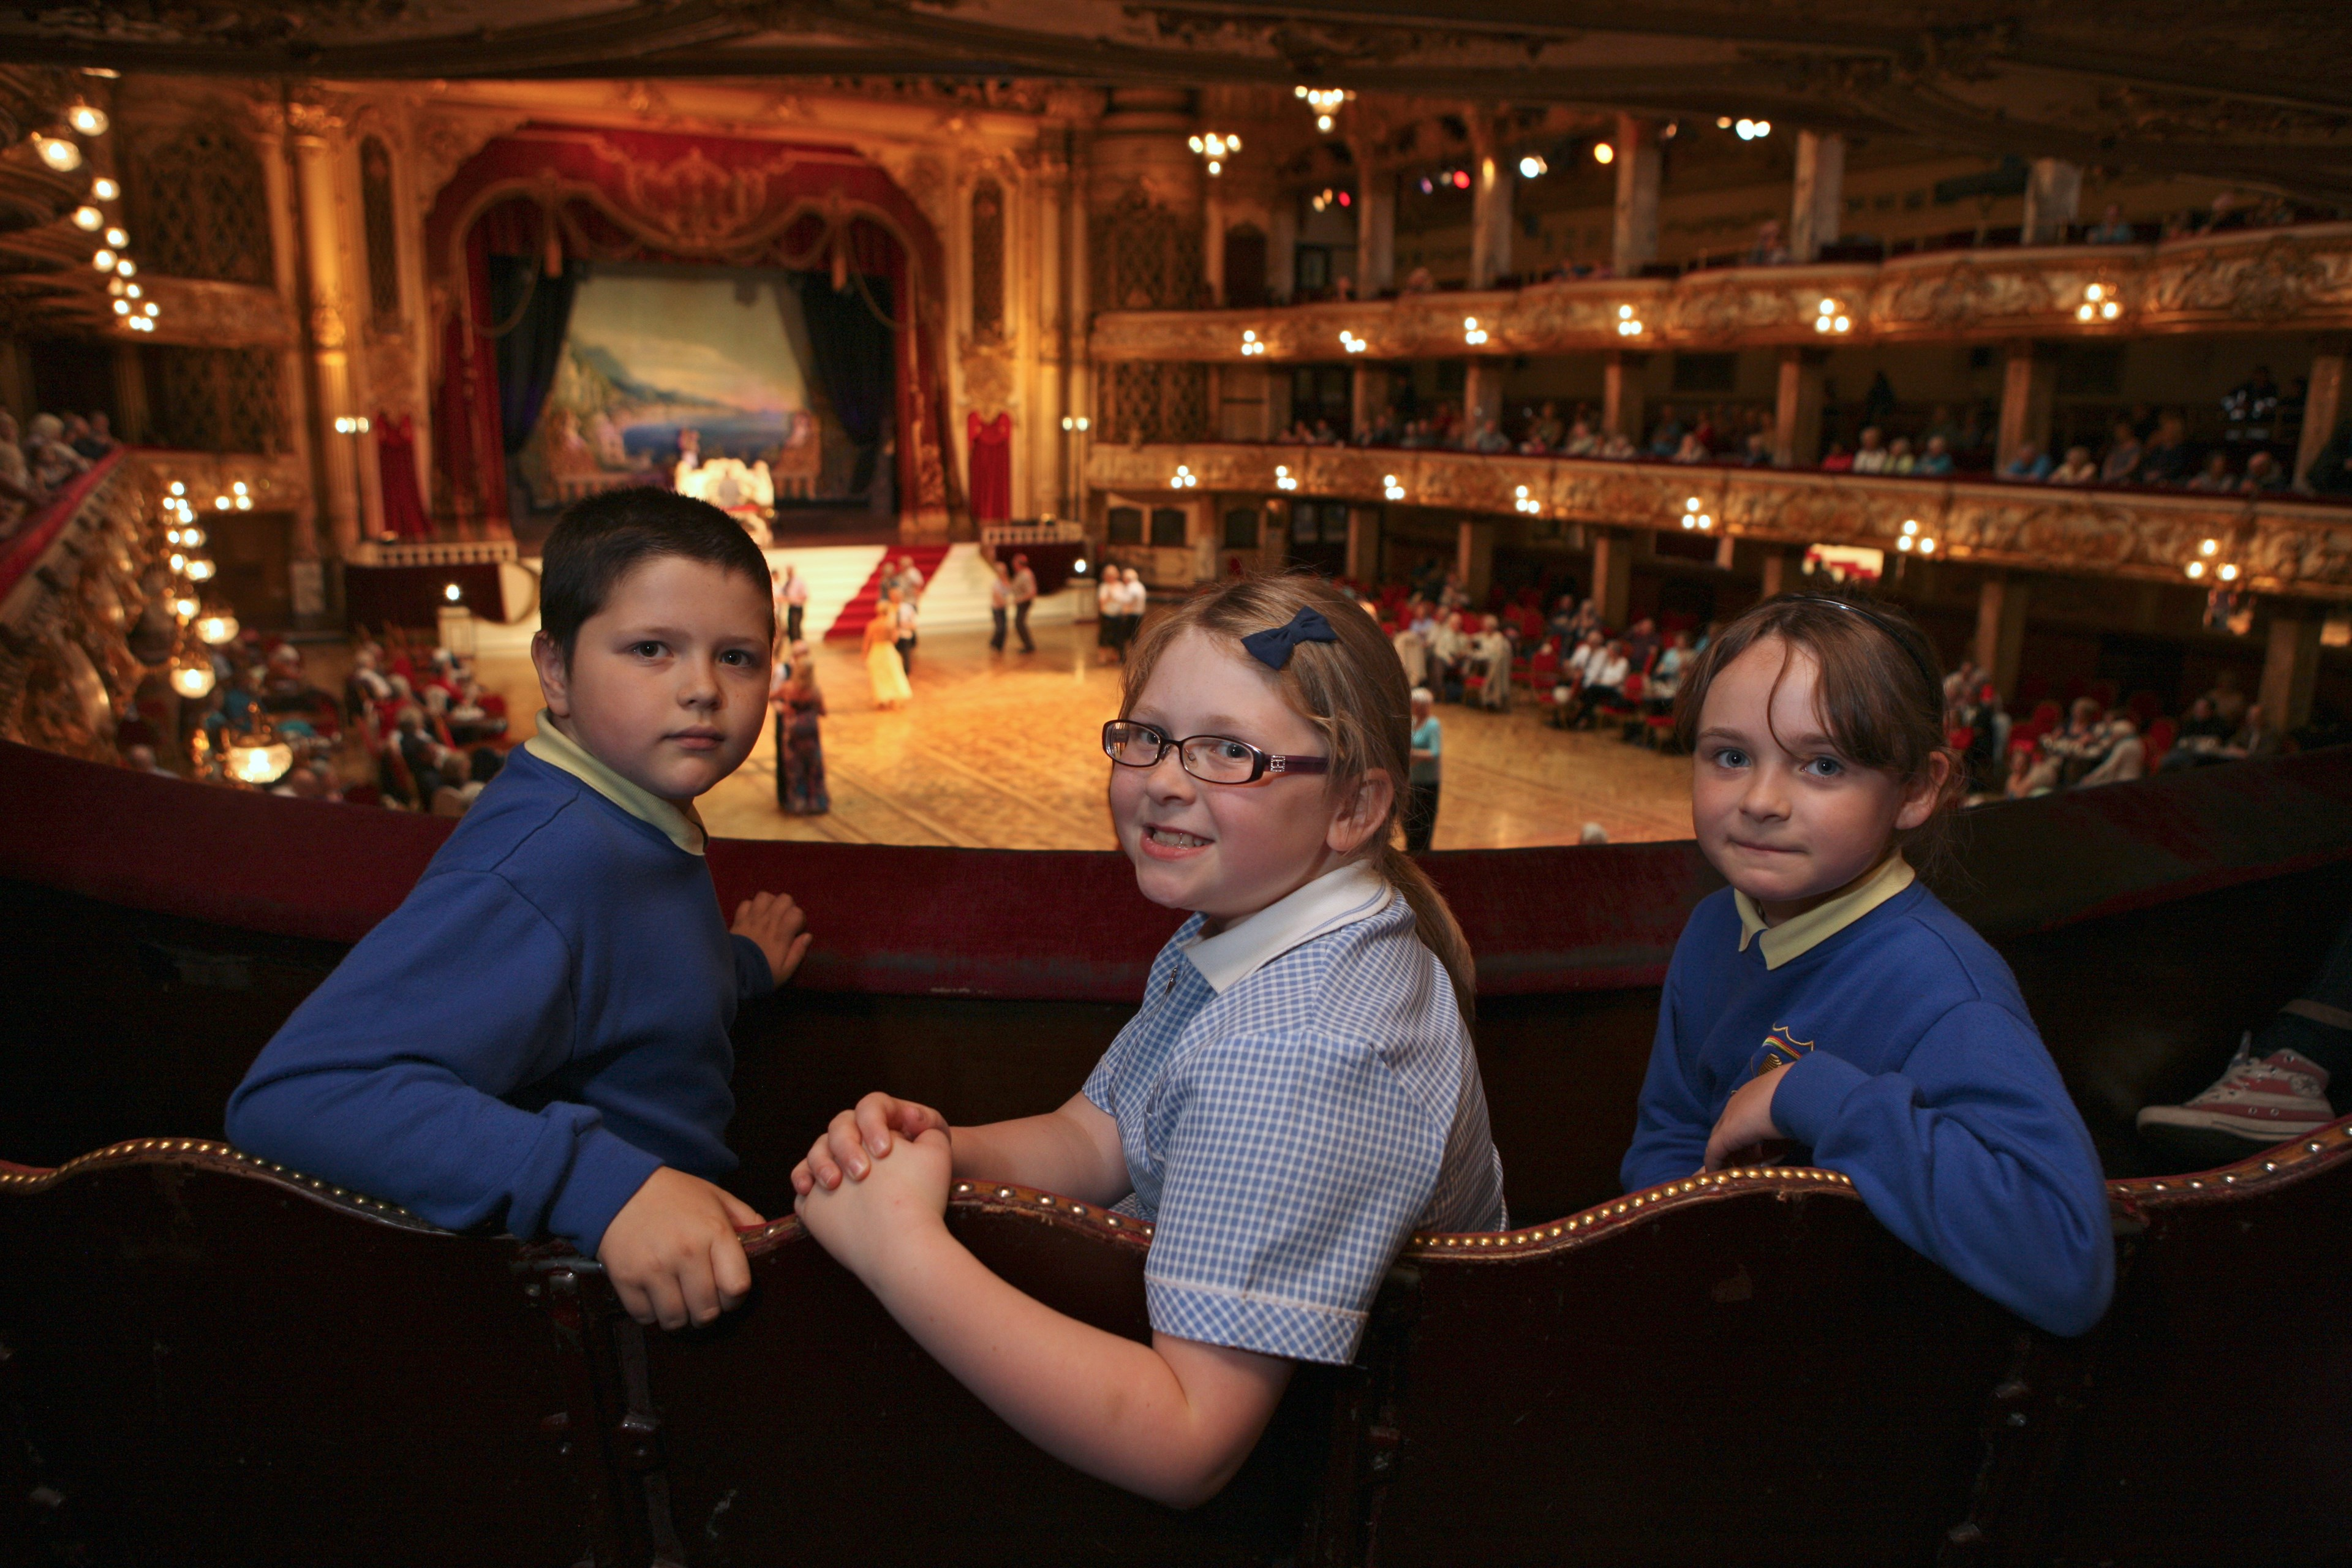 School Trip to the Blackpool Tower Ballroom